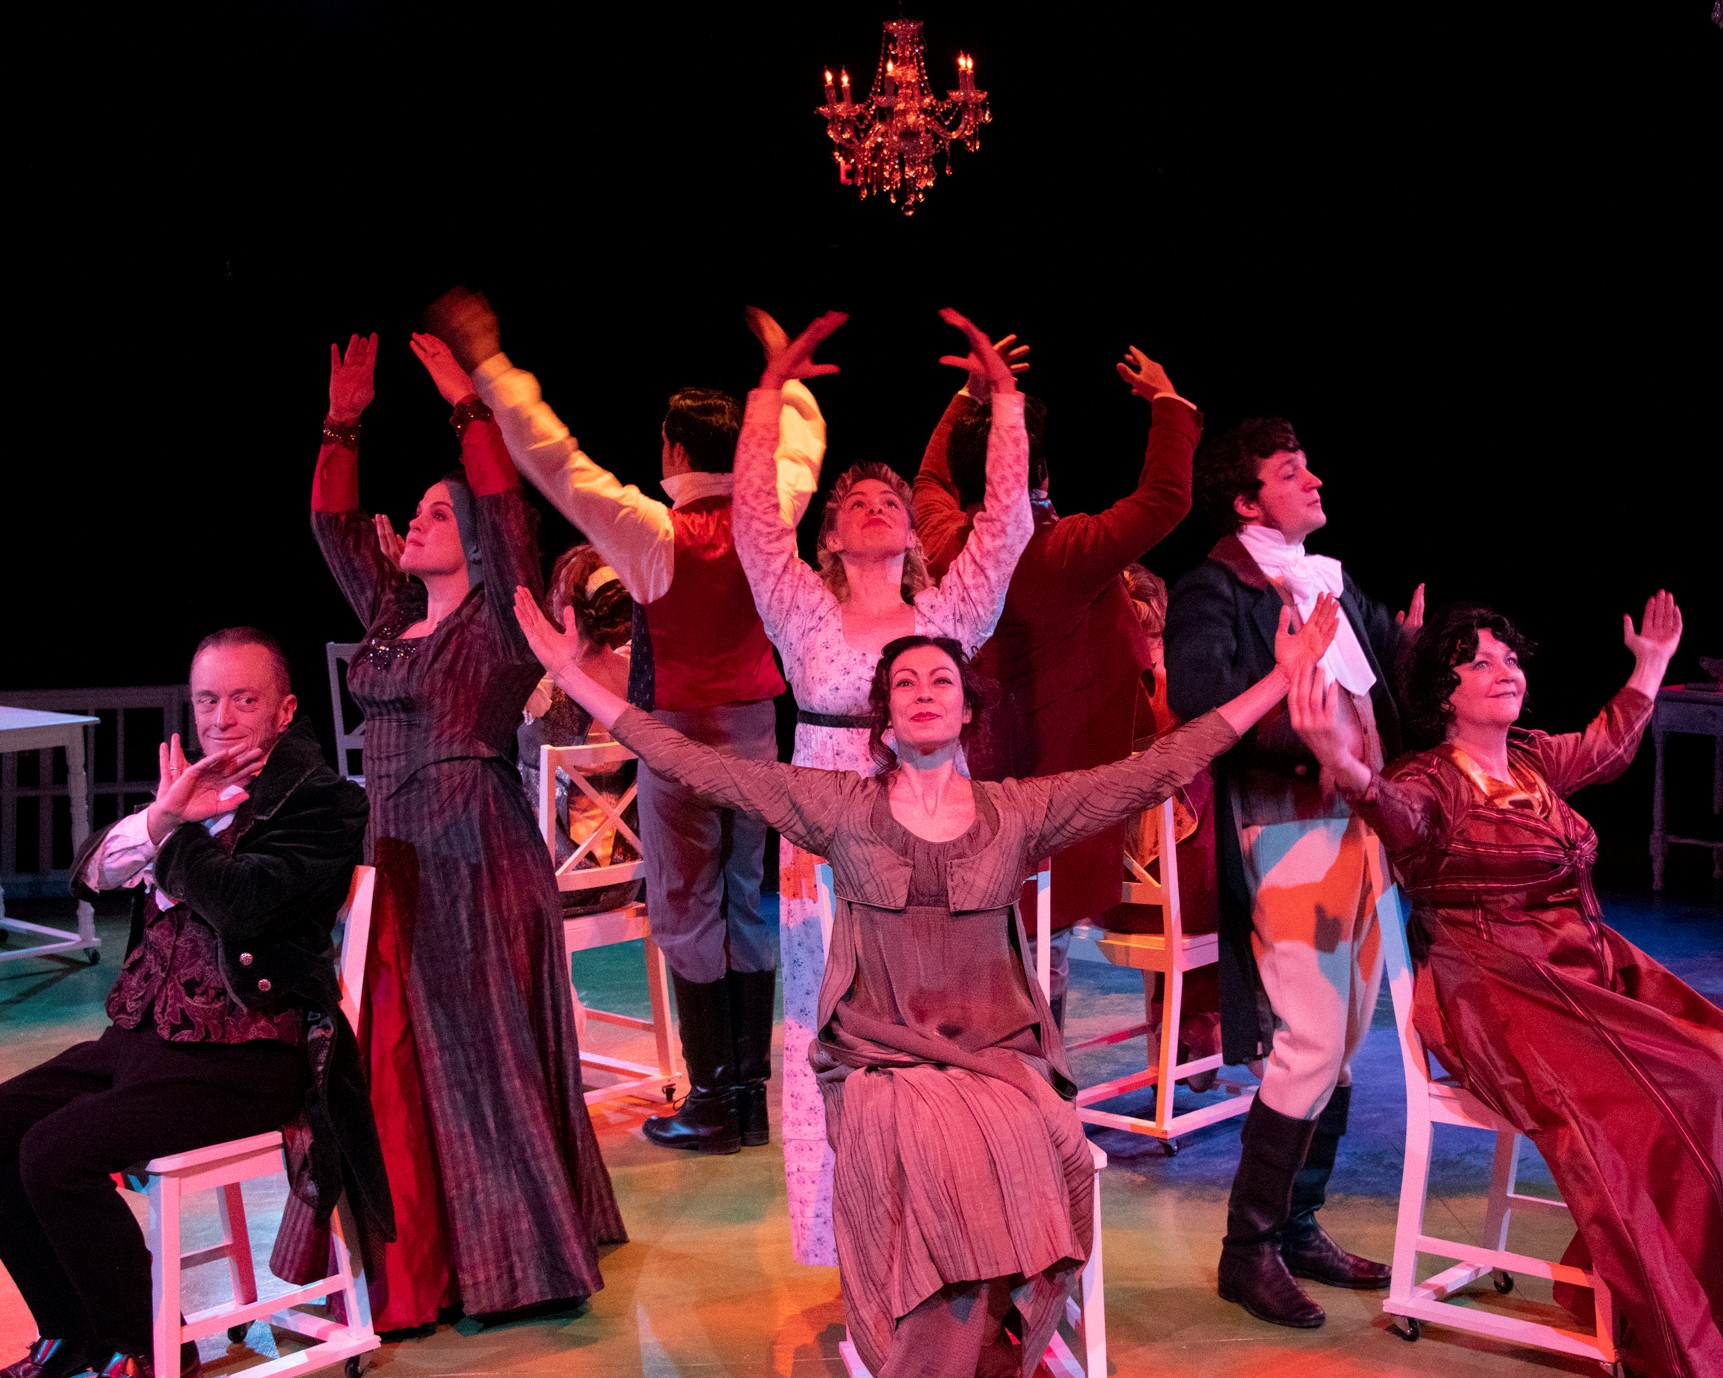 """4 Stars (out of 4) – Anthony Chase, The Buffalo News –  """"Jane Austen through a kaleidoscope"""""""